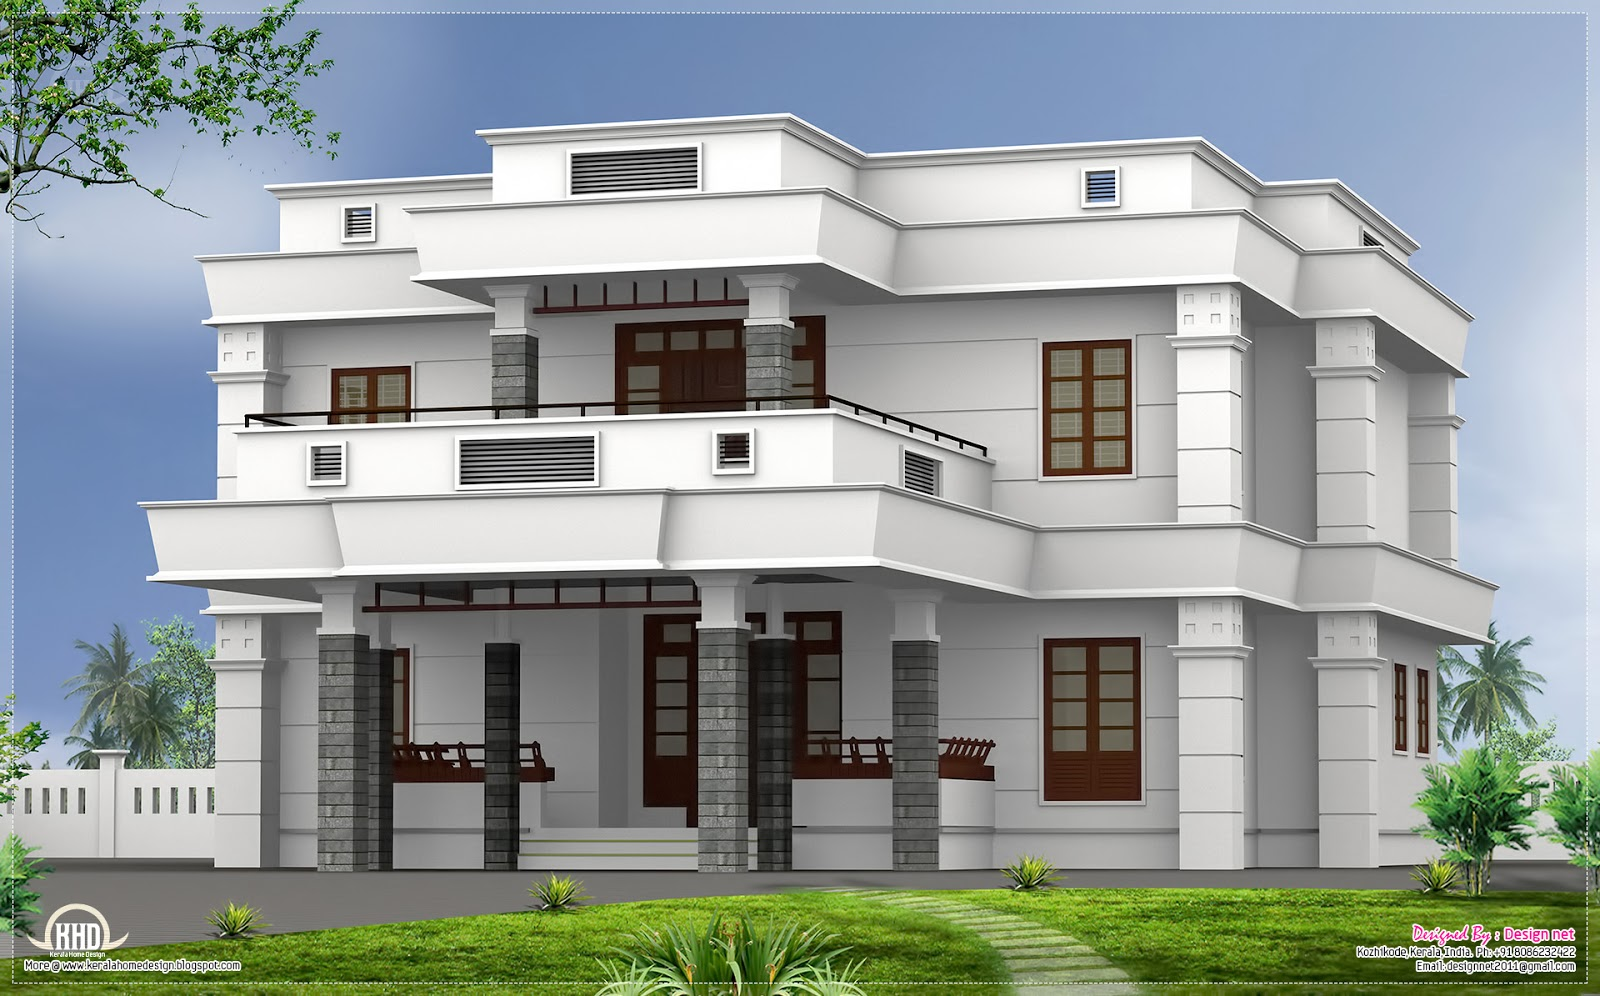 5 Bhk Modern Flat Roof House Design Kerala Home Design